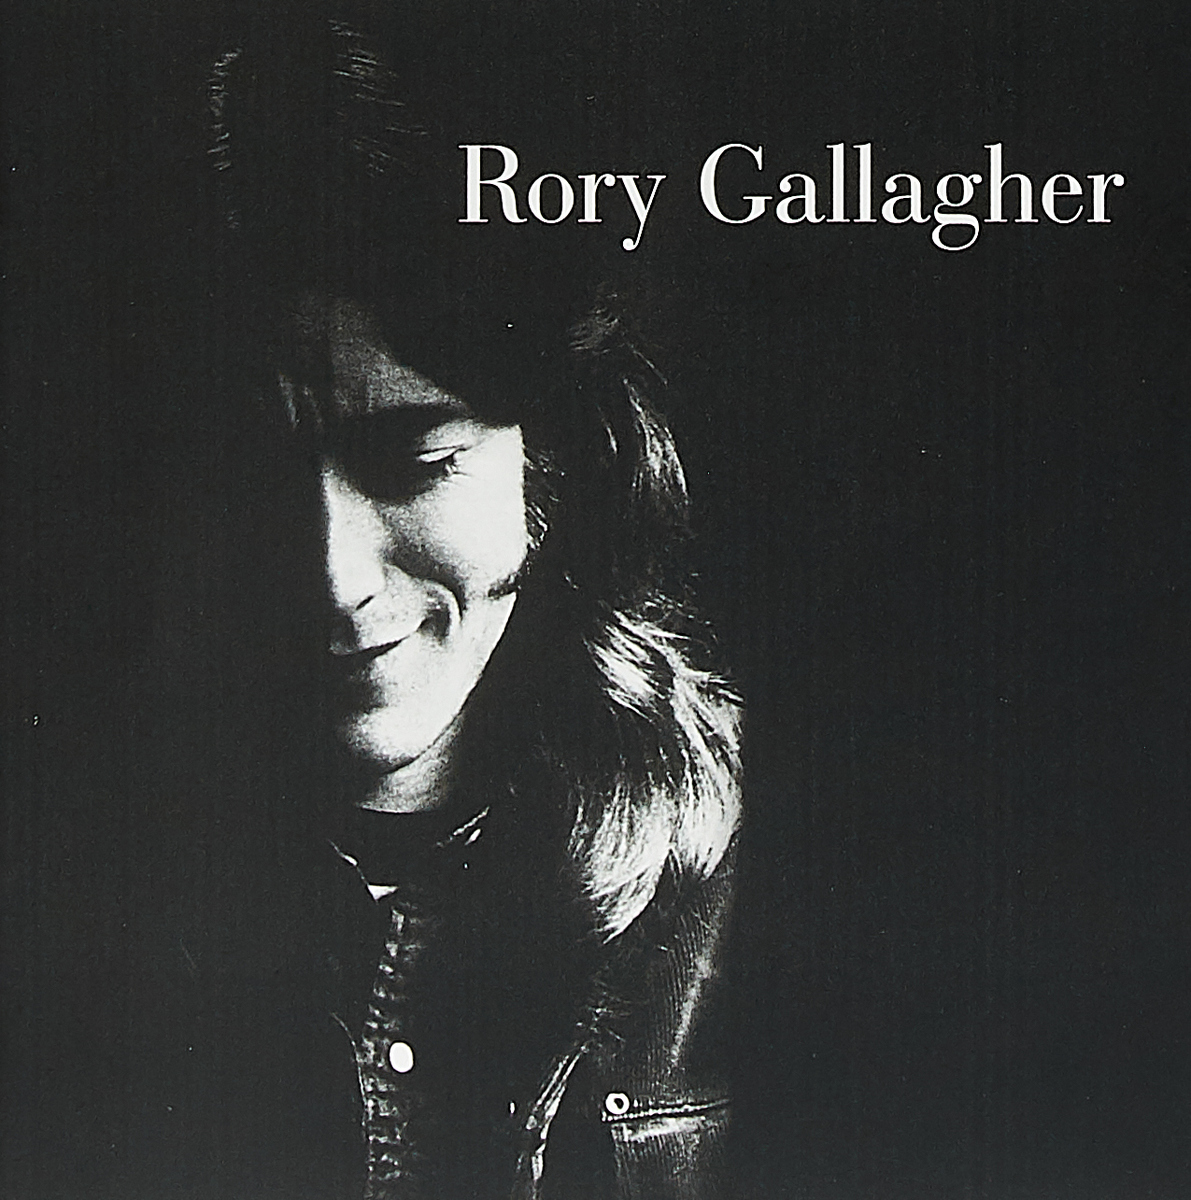 Рори Галлахер Rory Gallagher. Rory Gallagher (CD) rory wants a pet level 1